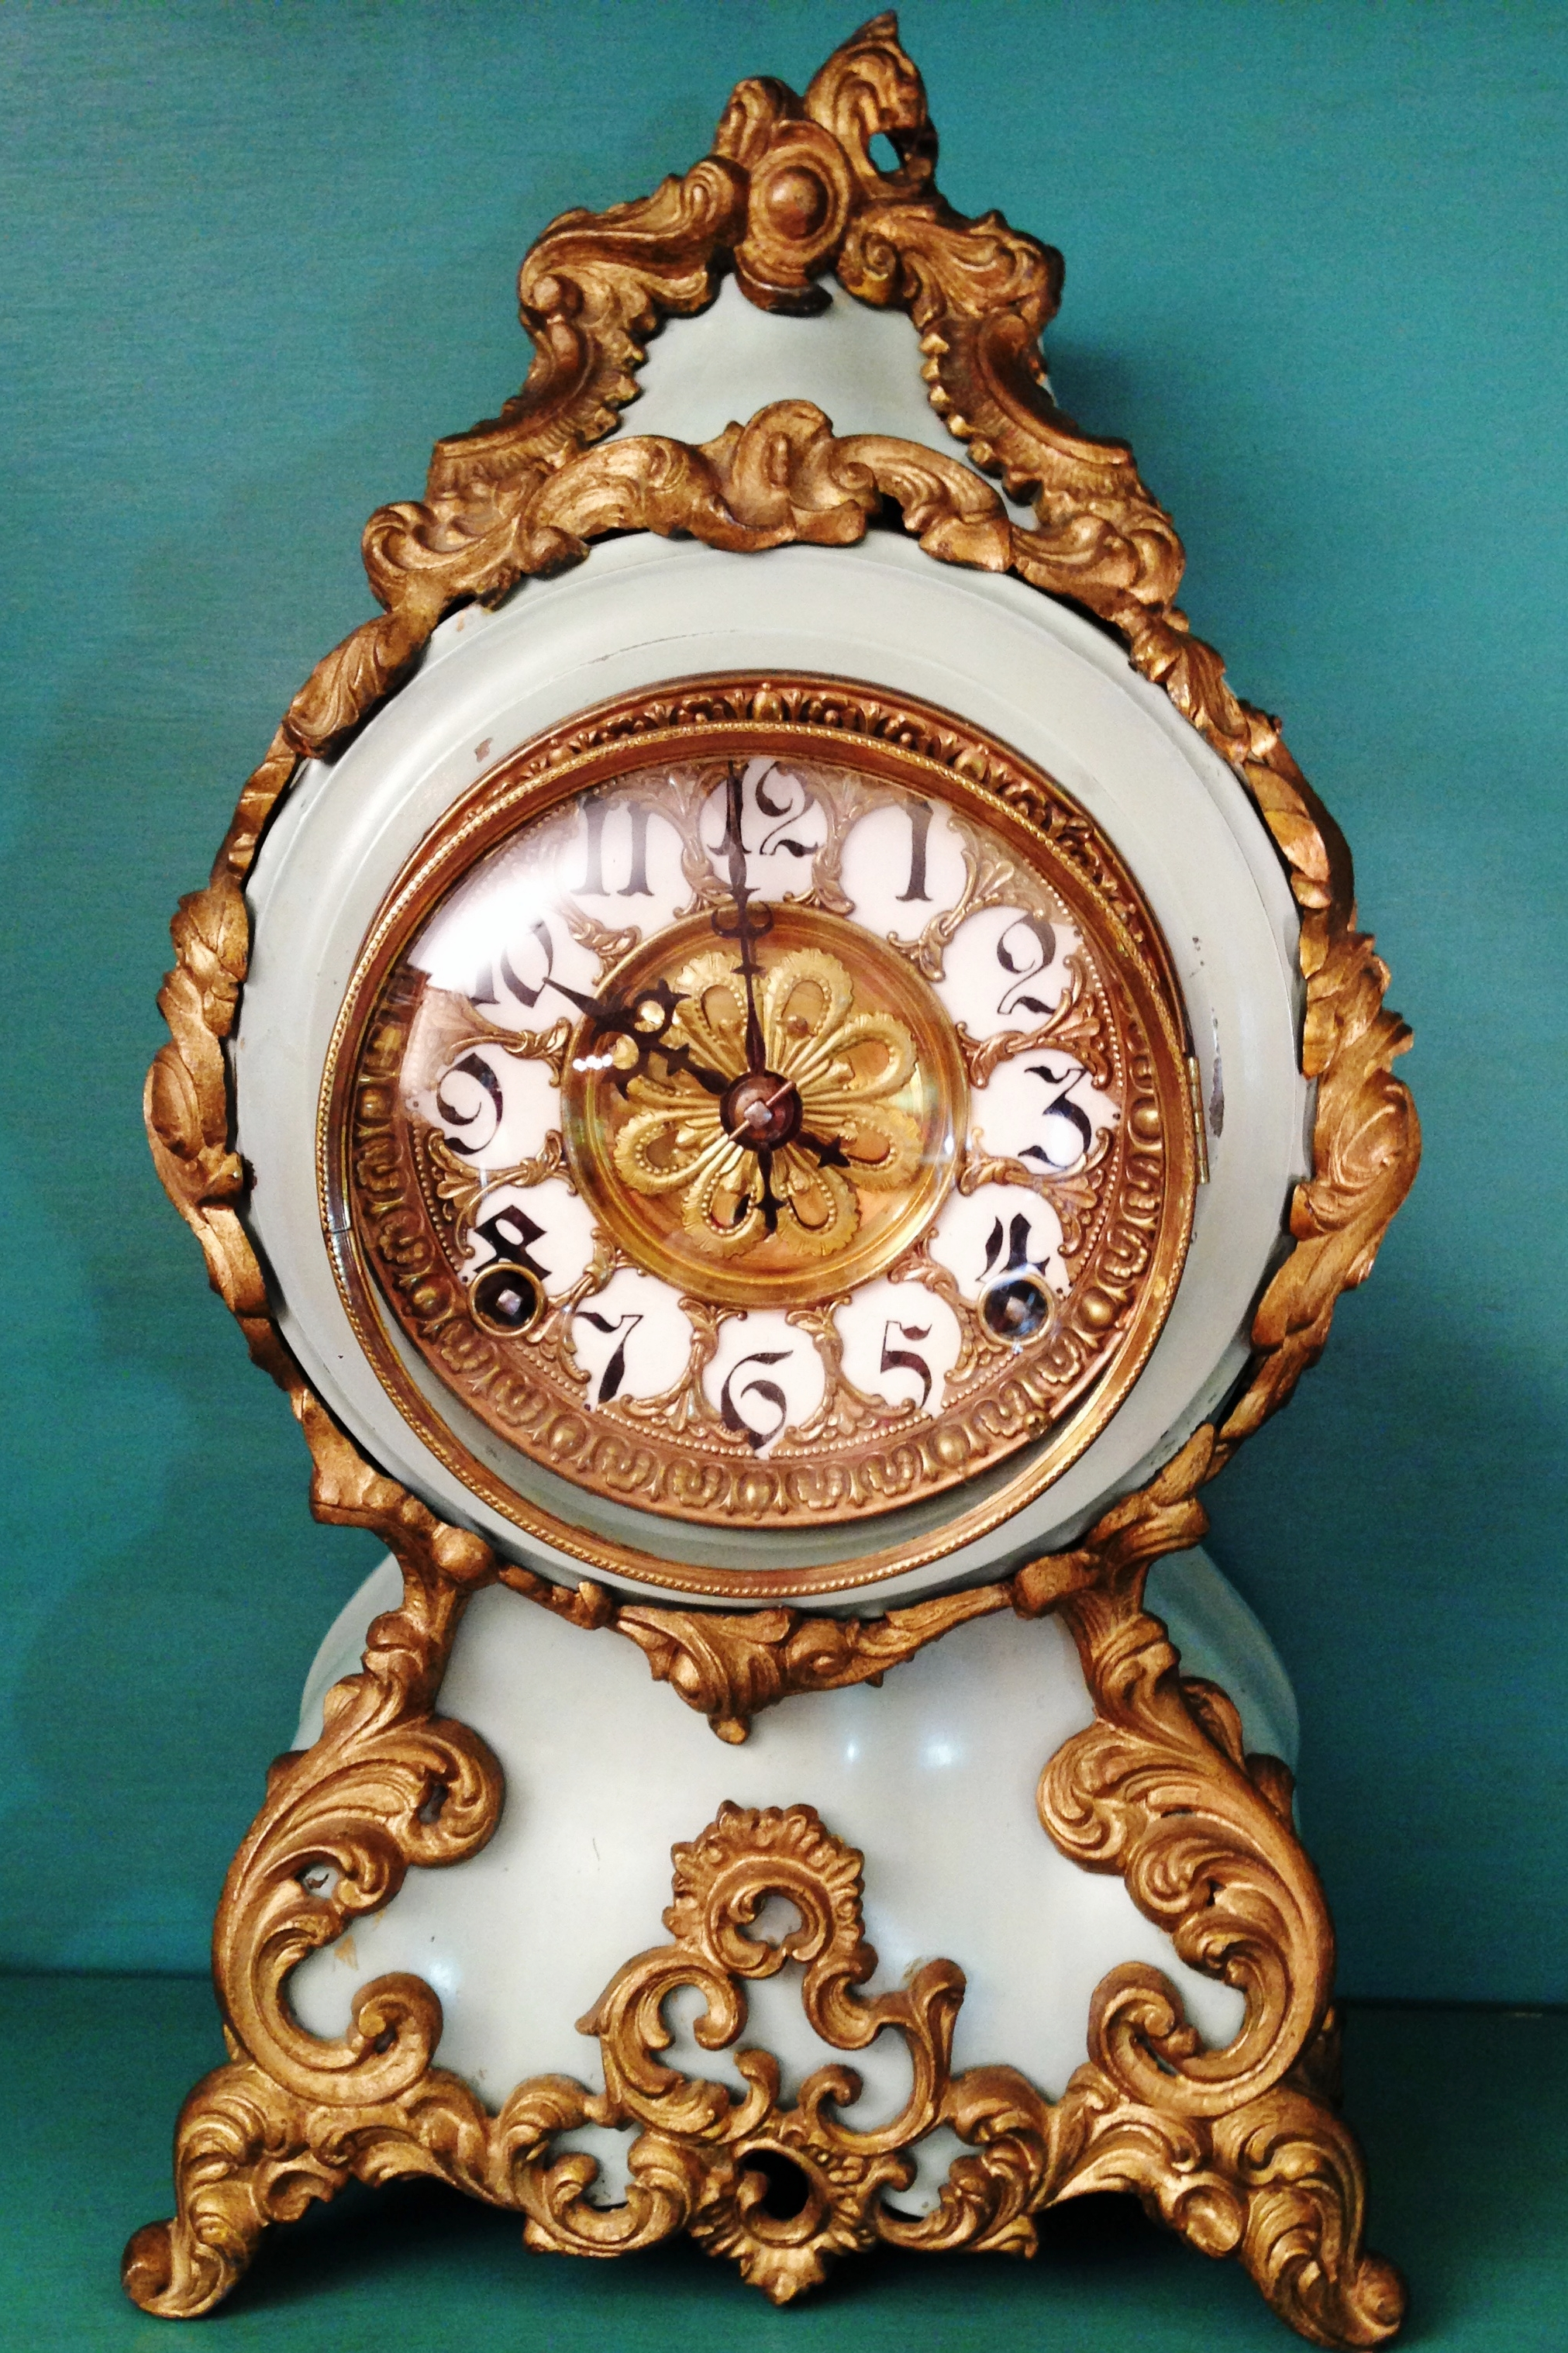 Appraisals - We help with taking inventory of assets for probate and estate tax returns. Maybe you need some advice on grandpa's record collection or are curious about some inherited antiques.